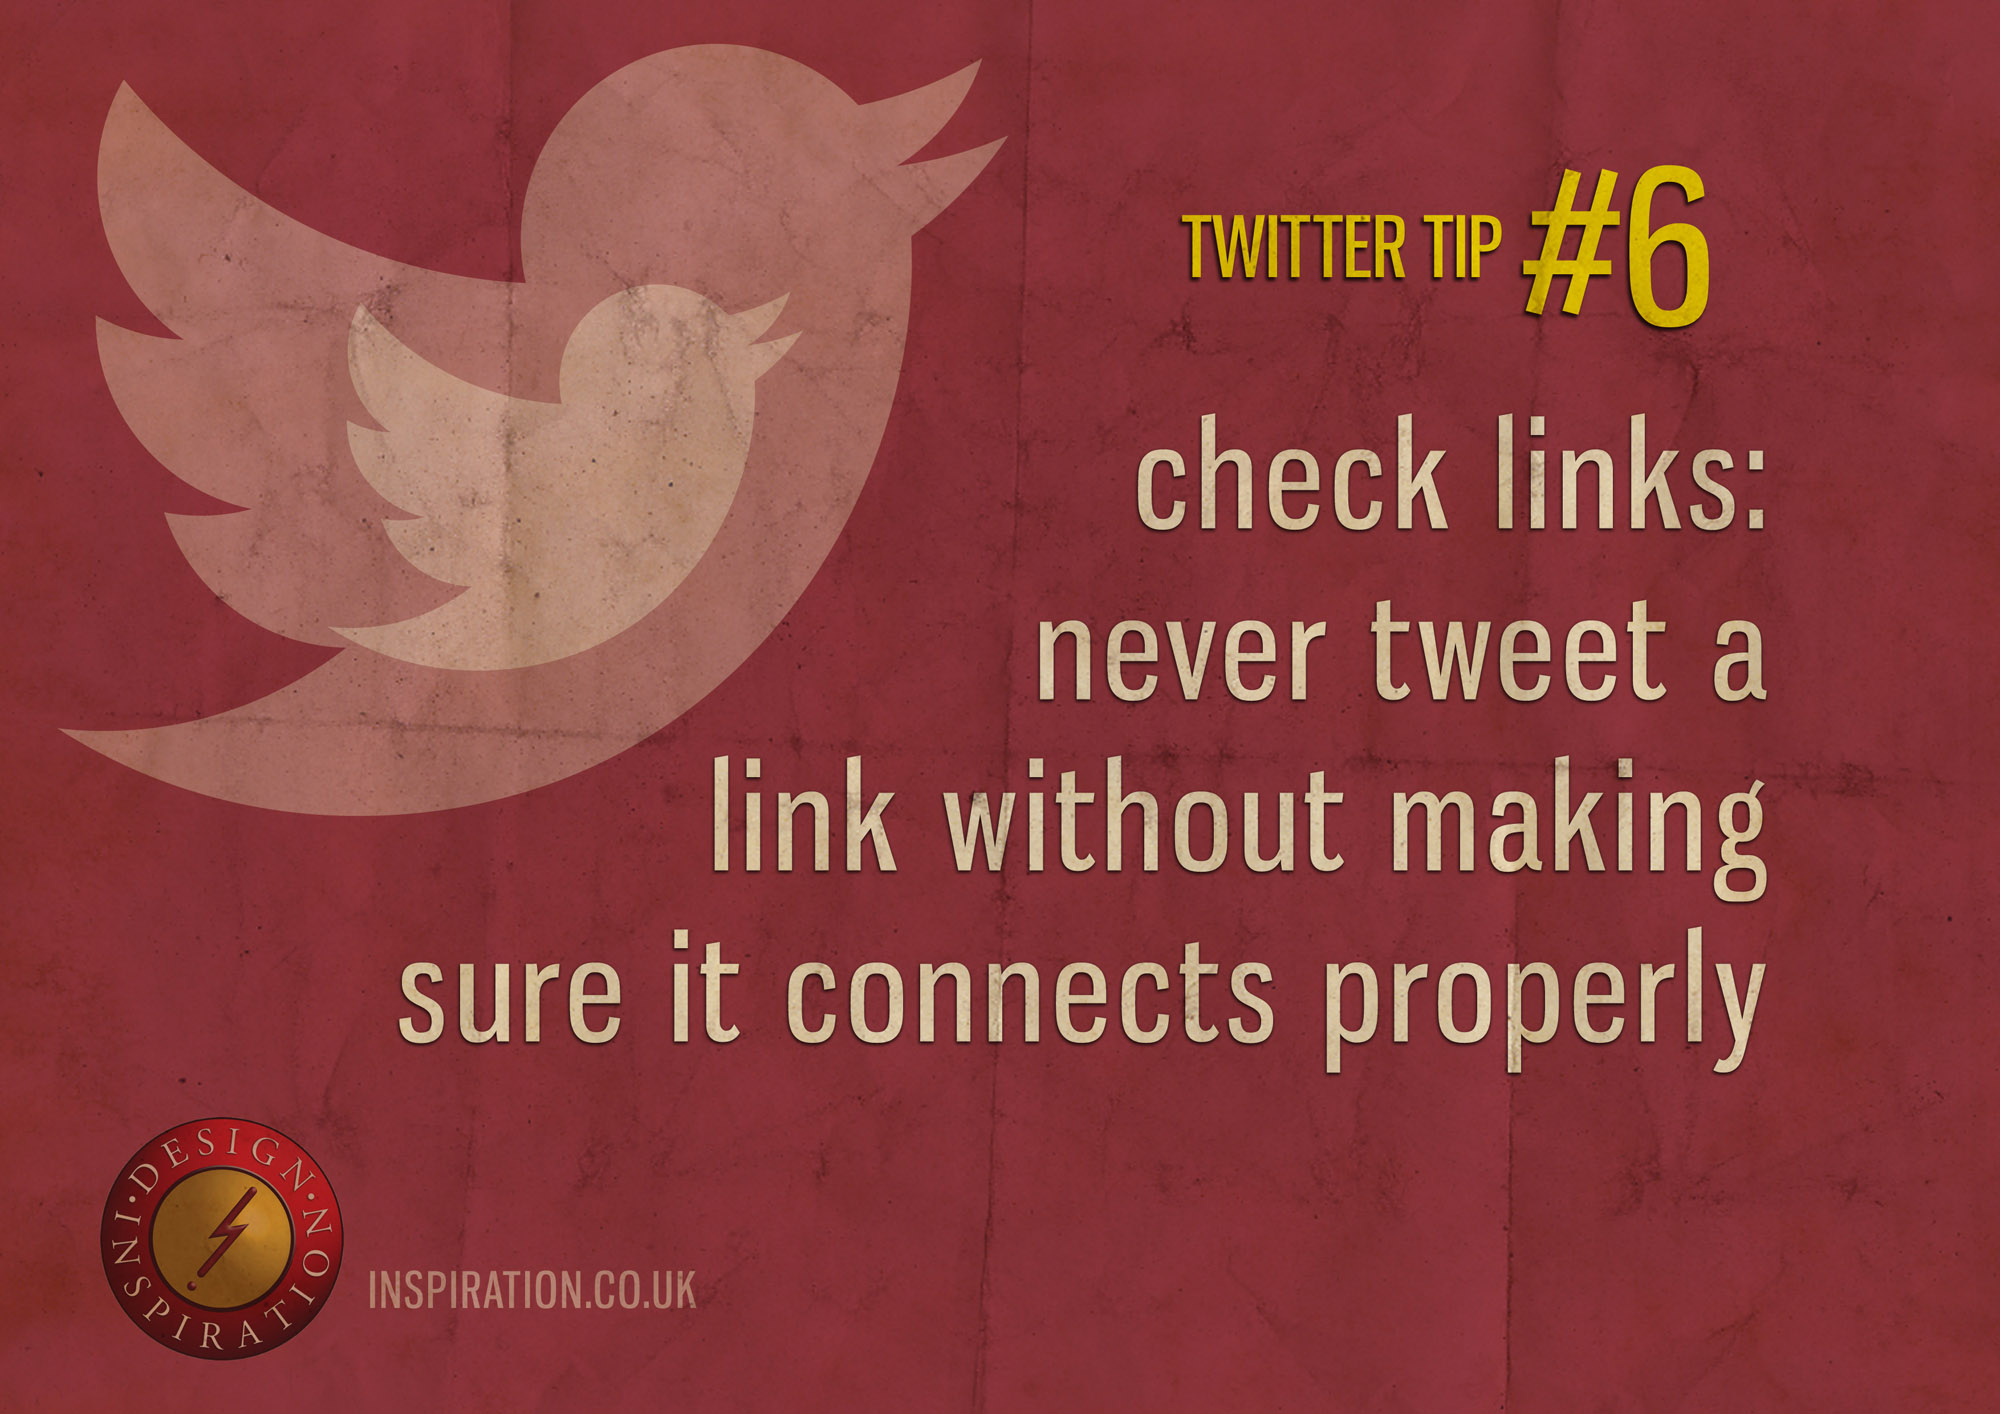 Check your Links before you Tweet them